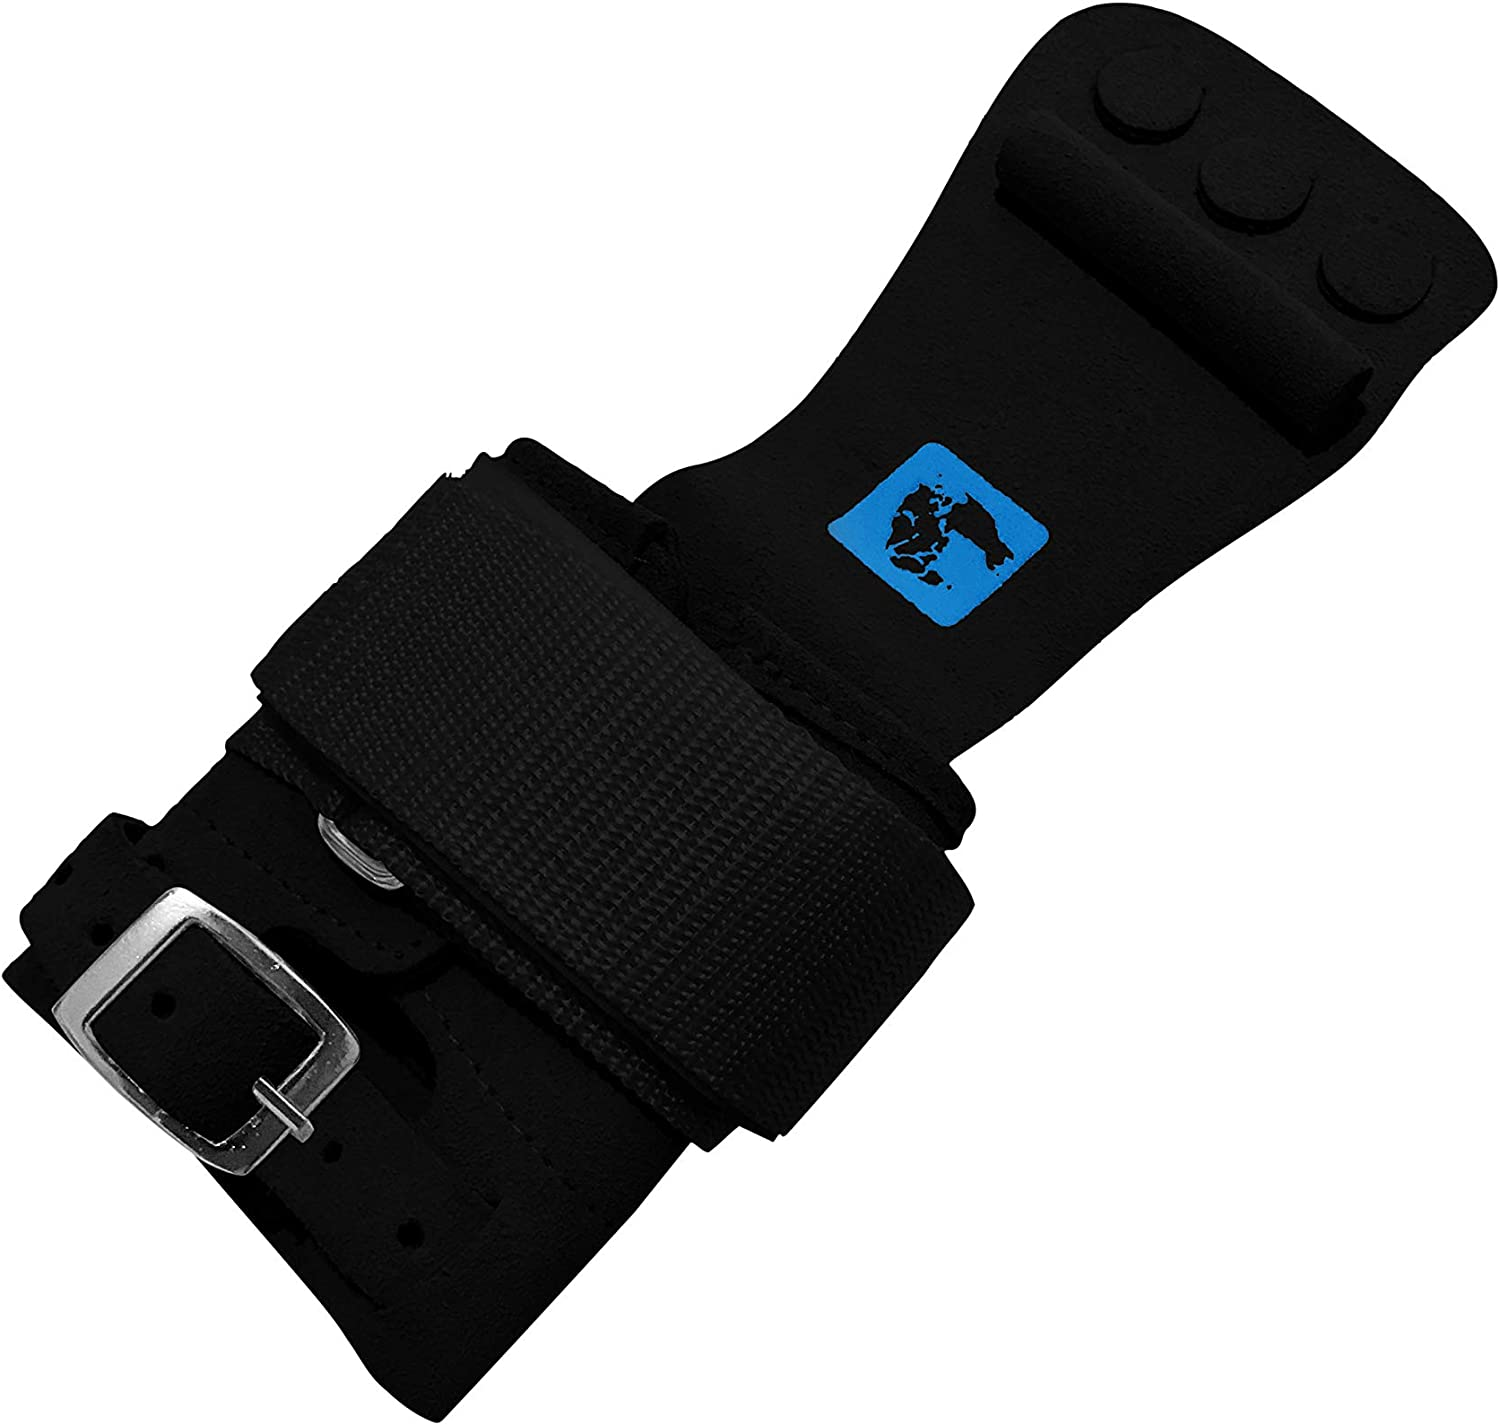 Senior gymadvisor leather MENS HIGH BAR with combi fastening gymnastic hand guards 3 finger holes